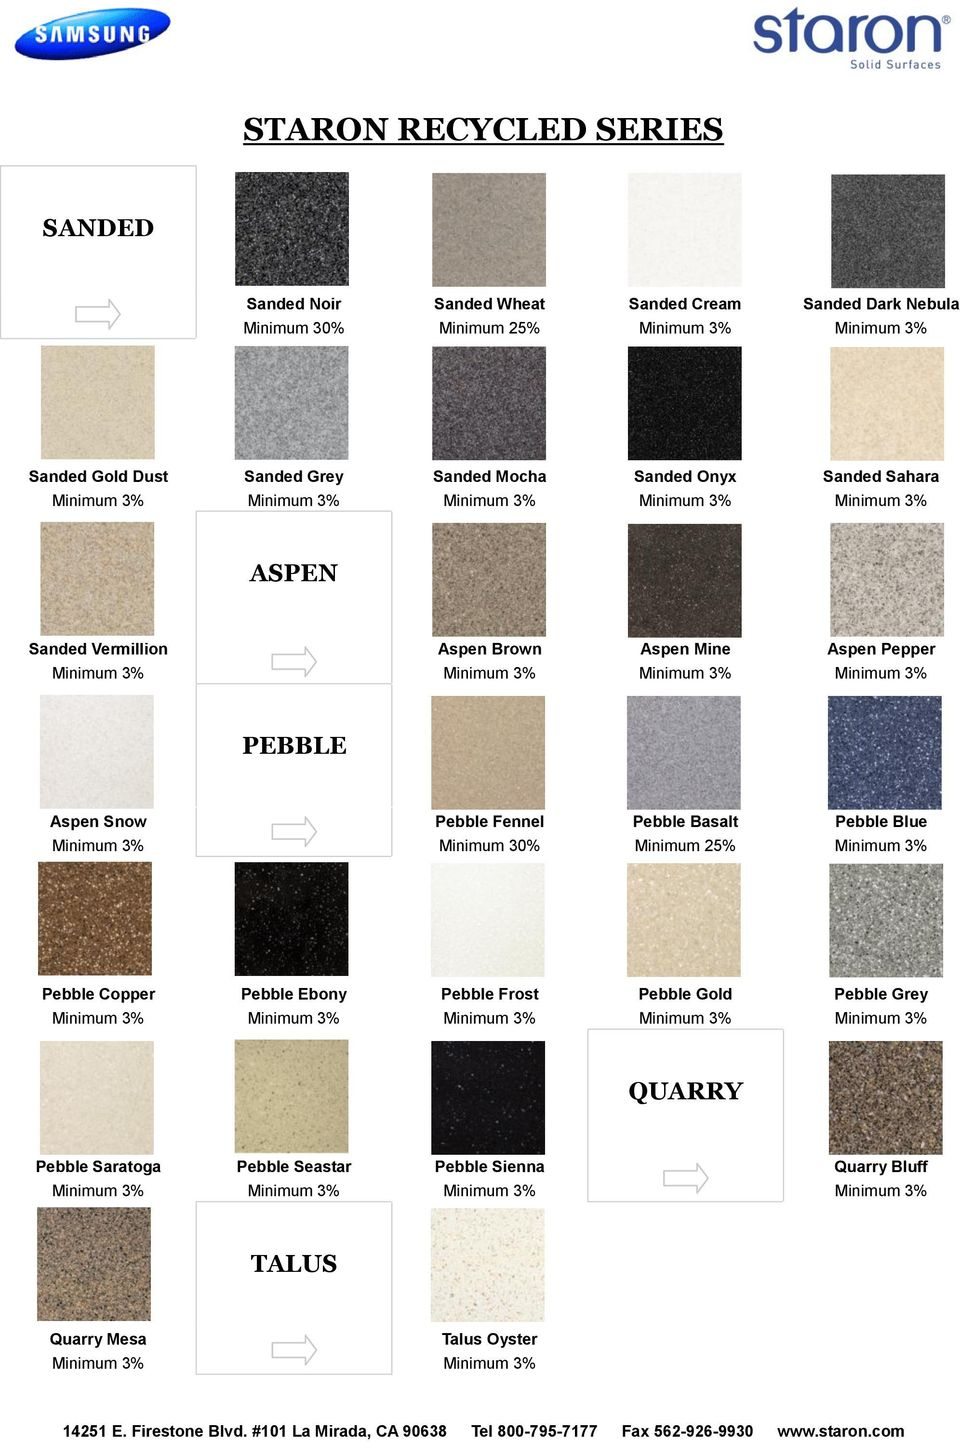 Pepper PEBBLE Aspen Snow Pebble Fennel Minimum 30% Pebble Basalt Minimum 25% Pebble Blue Pebble Copper Pebble Ebony